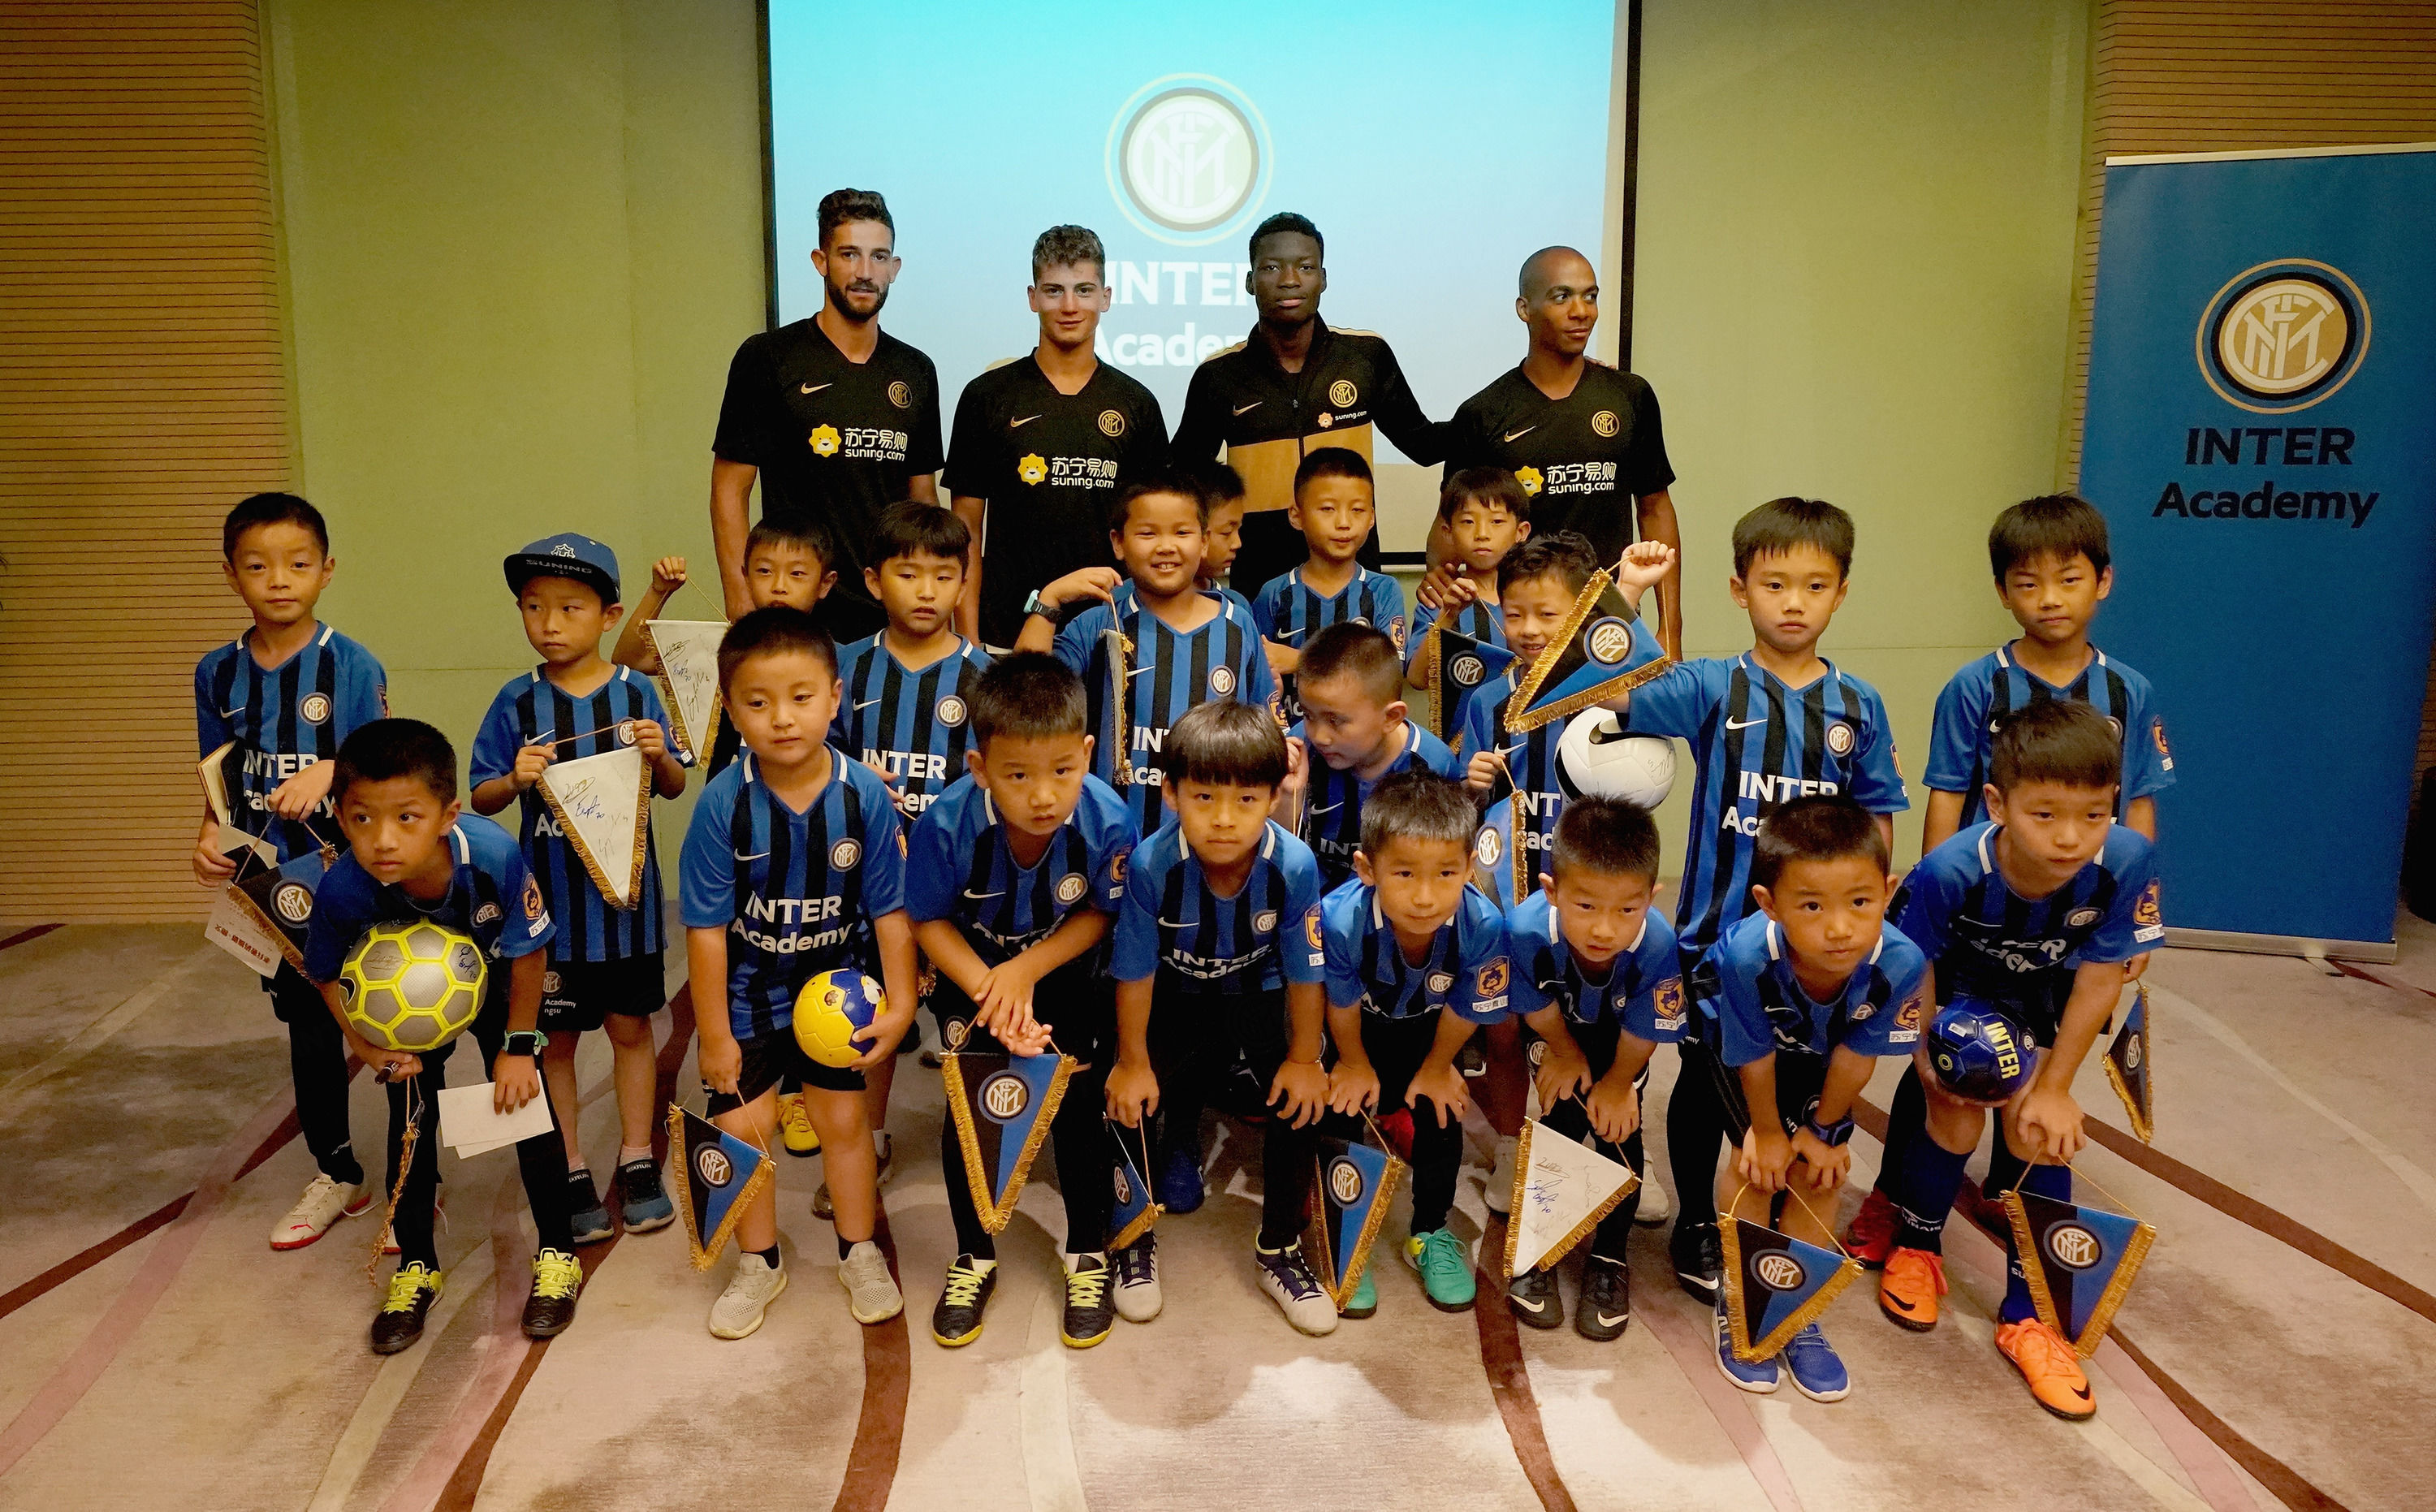 Meet&Greet with youngsters from Inter Academy Jiangsu